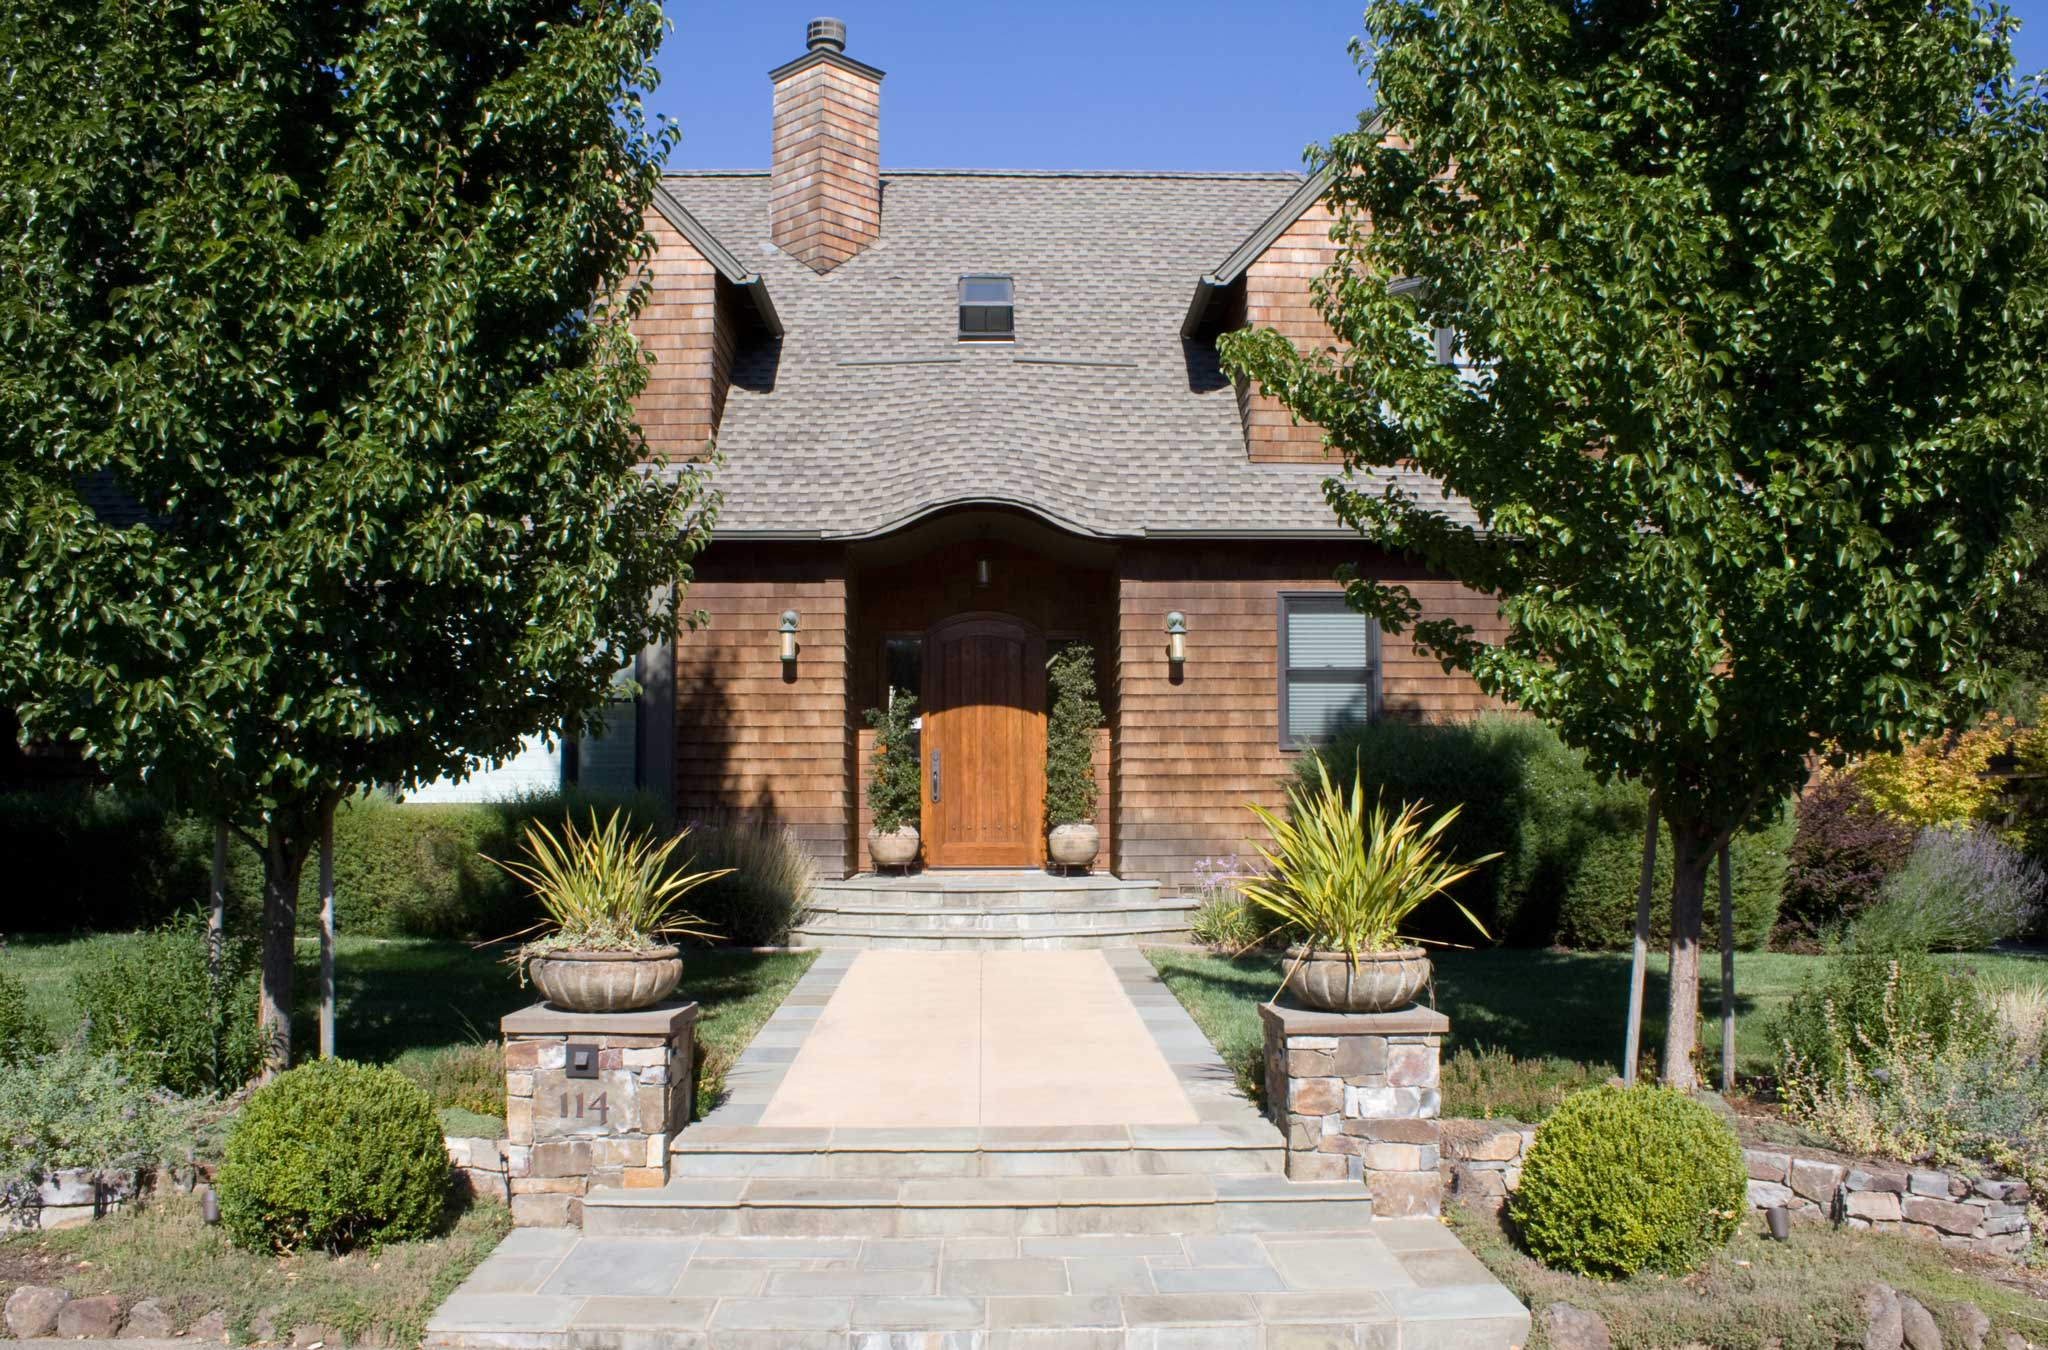 Shingle Style in The Hollow